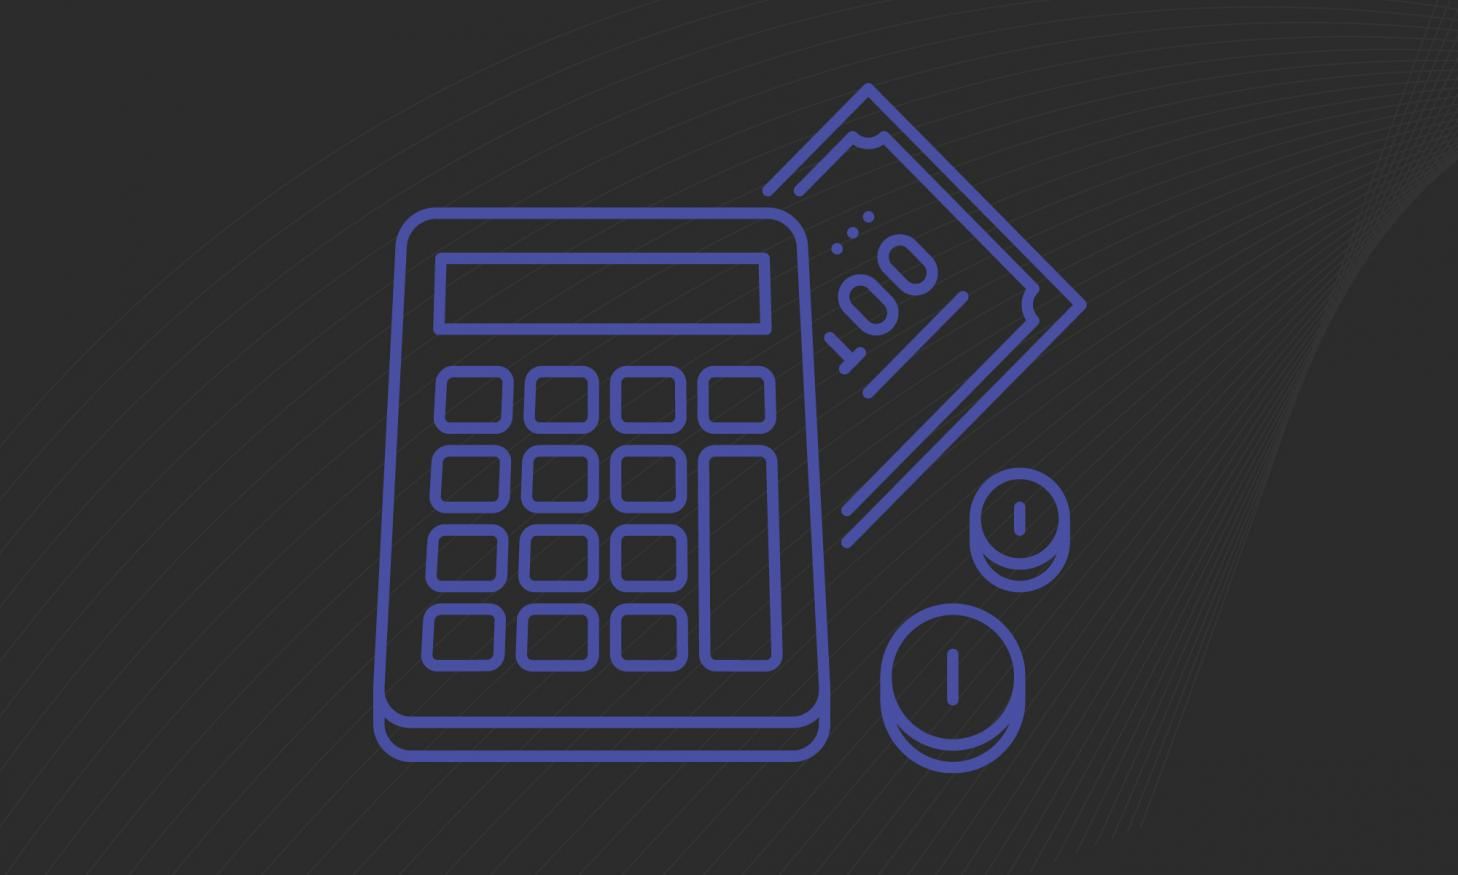 A graphic of a purple calculator on a black background